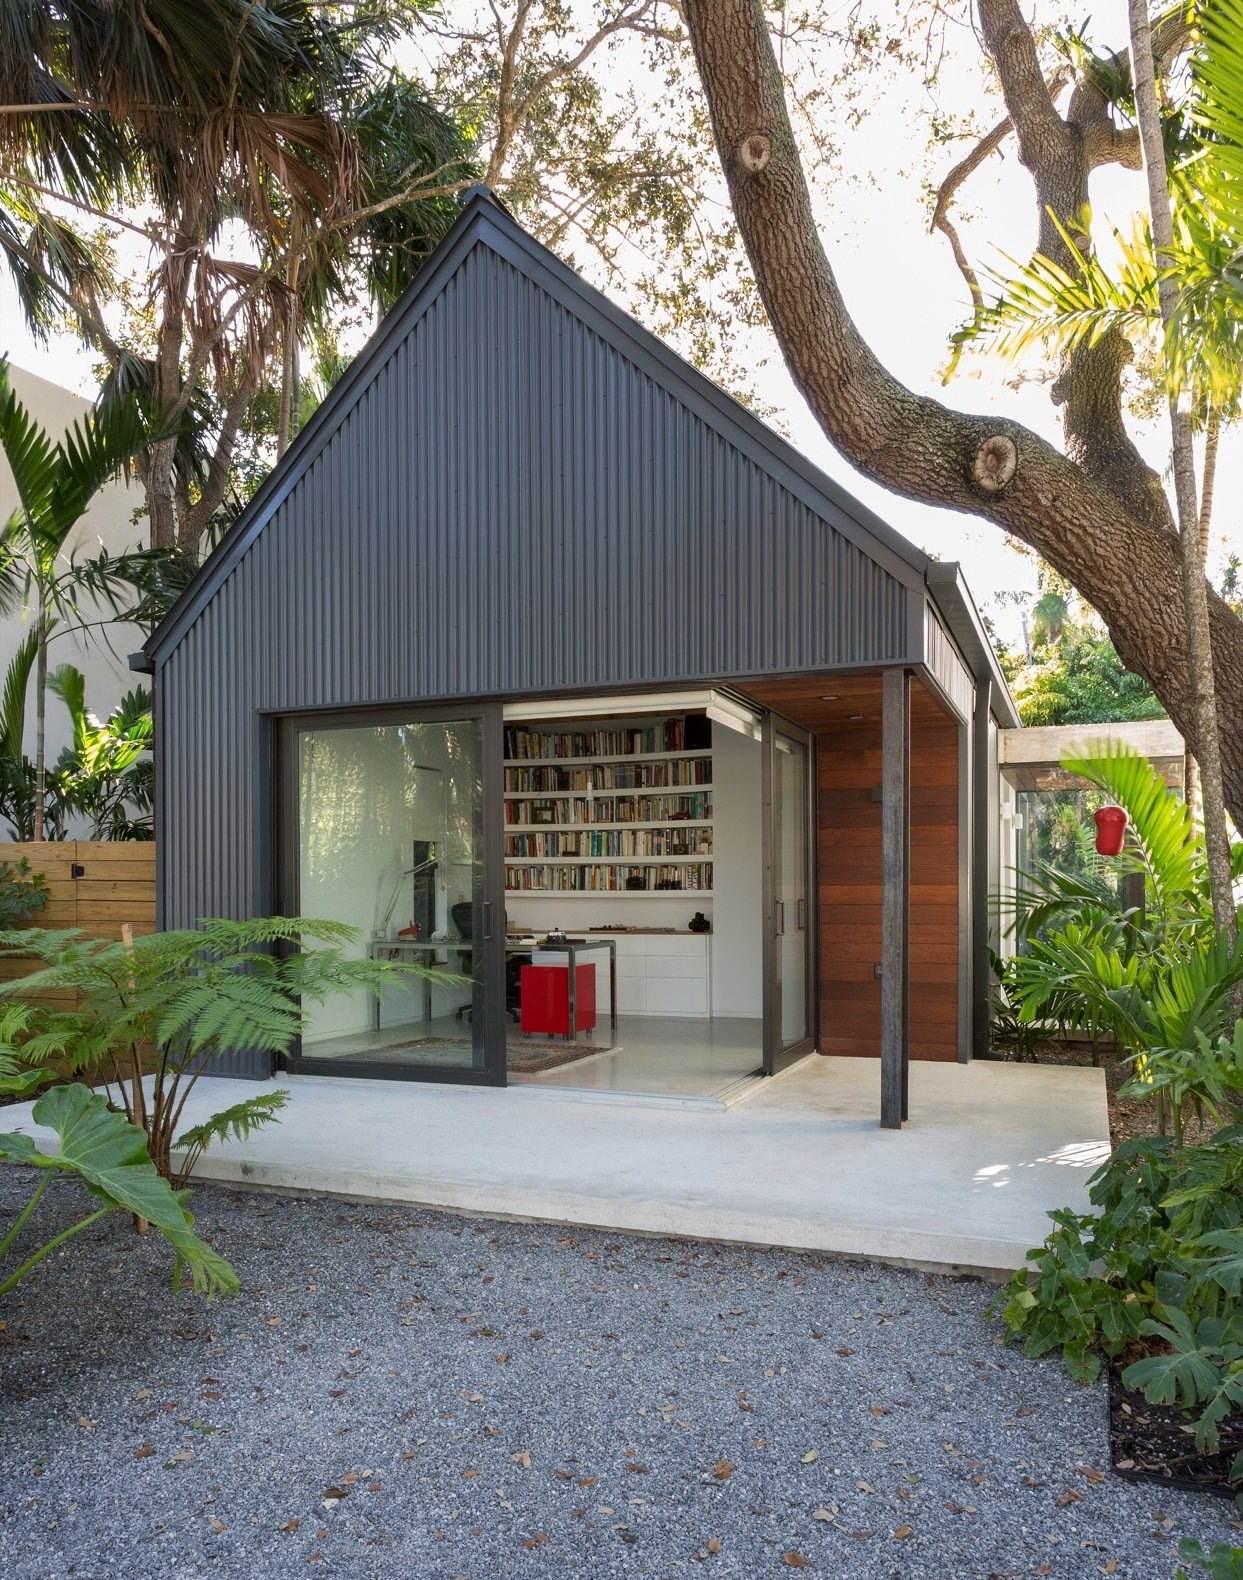 Exterior, House Building Type, Metal Roof Material, Metal Siding Material, and Gable RoofLine The gabled addition is topped with a standing seam metal roof and is clad in vertical corrugated metal siding.    Photos from A Minimalist Bungalow in Miami Welcomes a Sleek New Addition